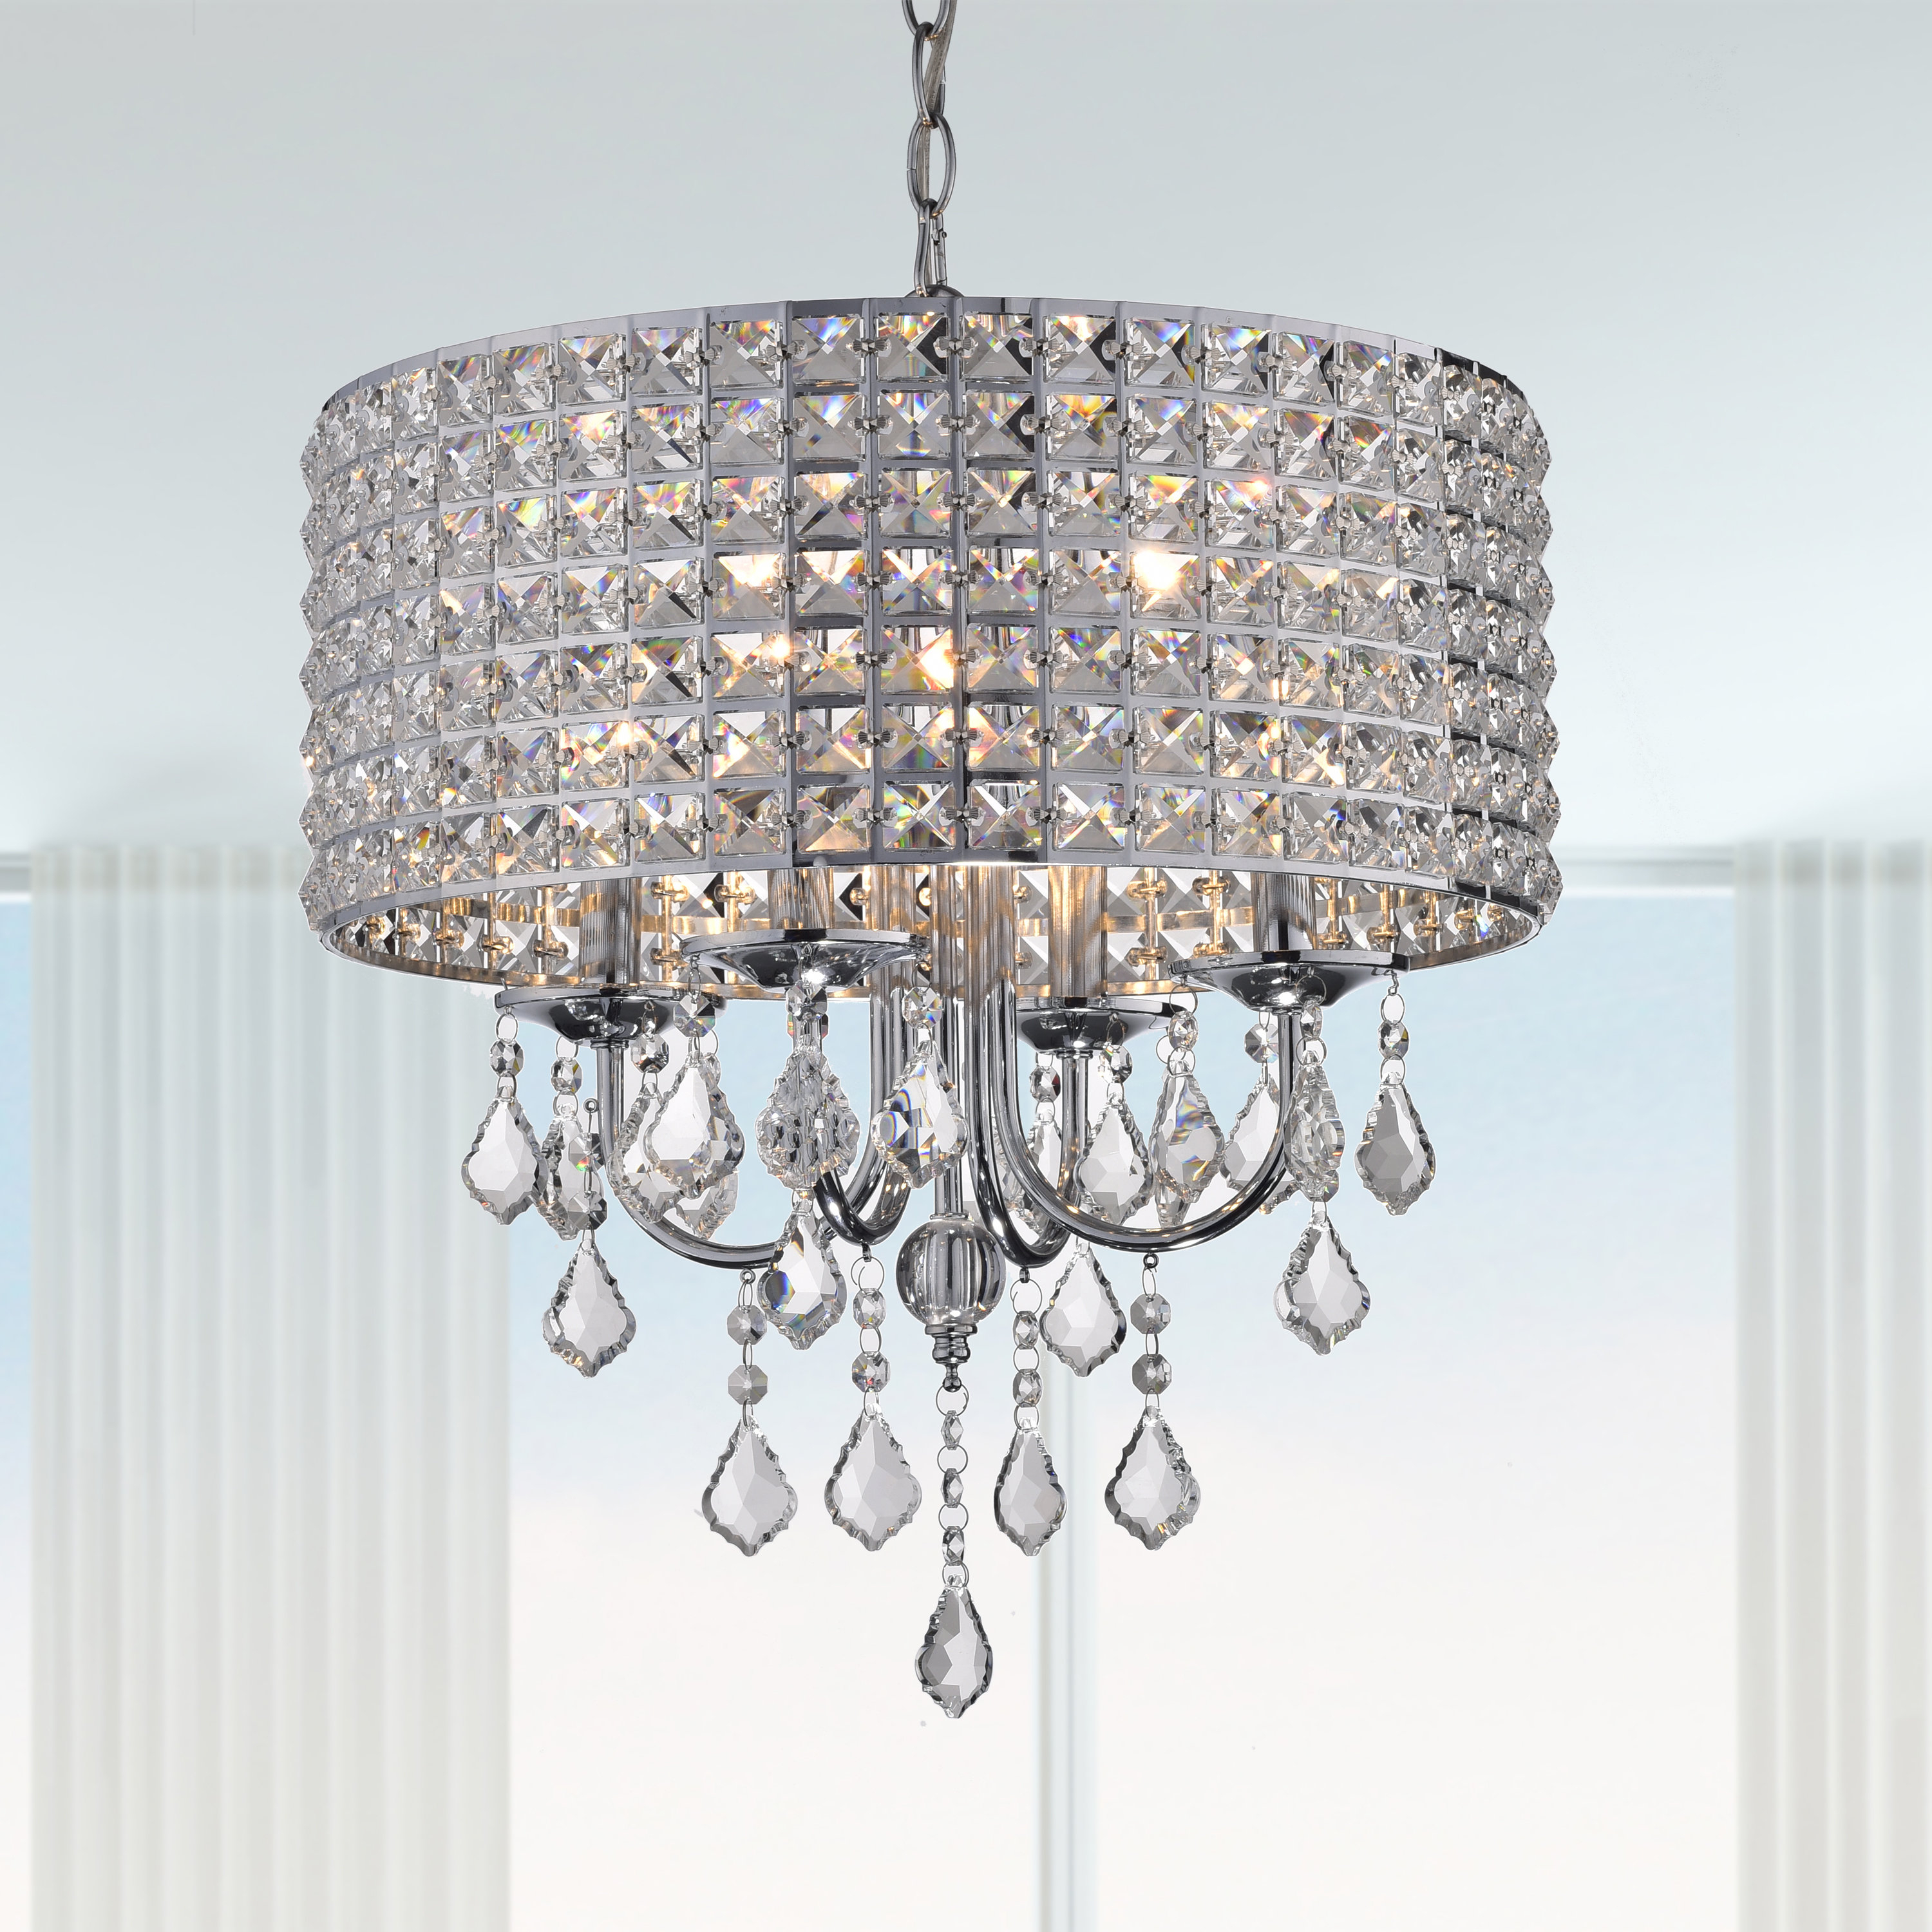 Albano 4 Light Crystal Chandelier For Most Recently Released Jill 4 Light Drum Chandeliers (View 2 of 20)